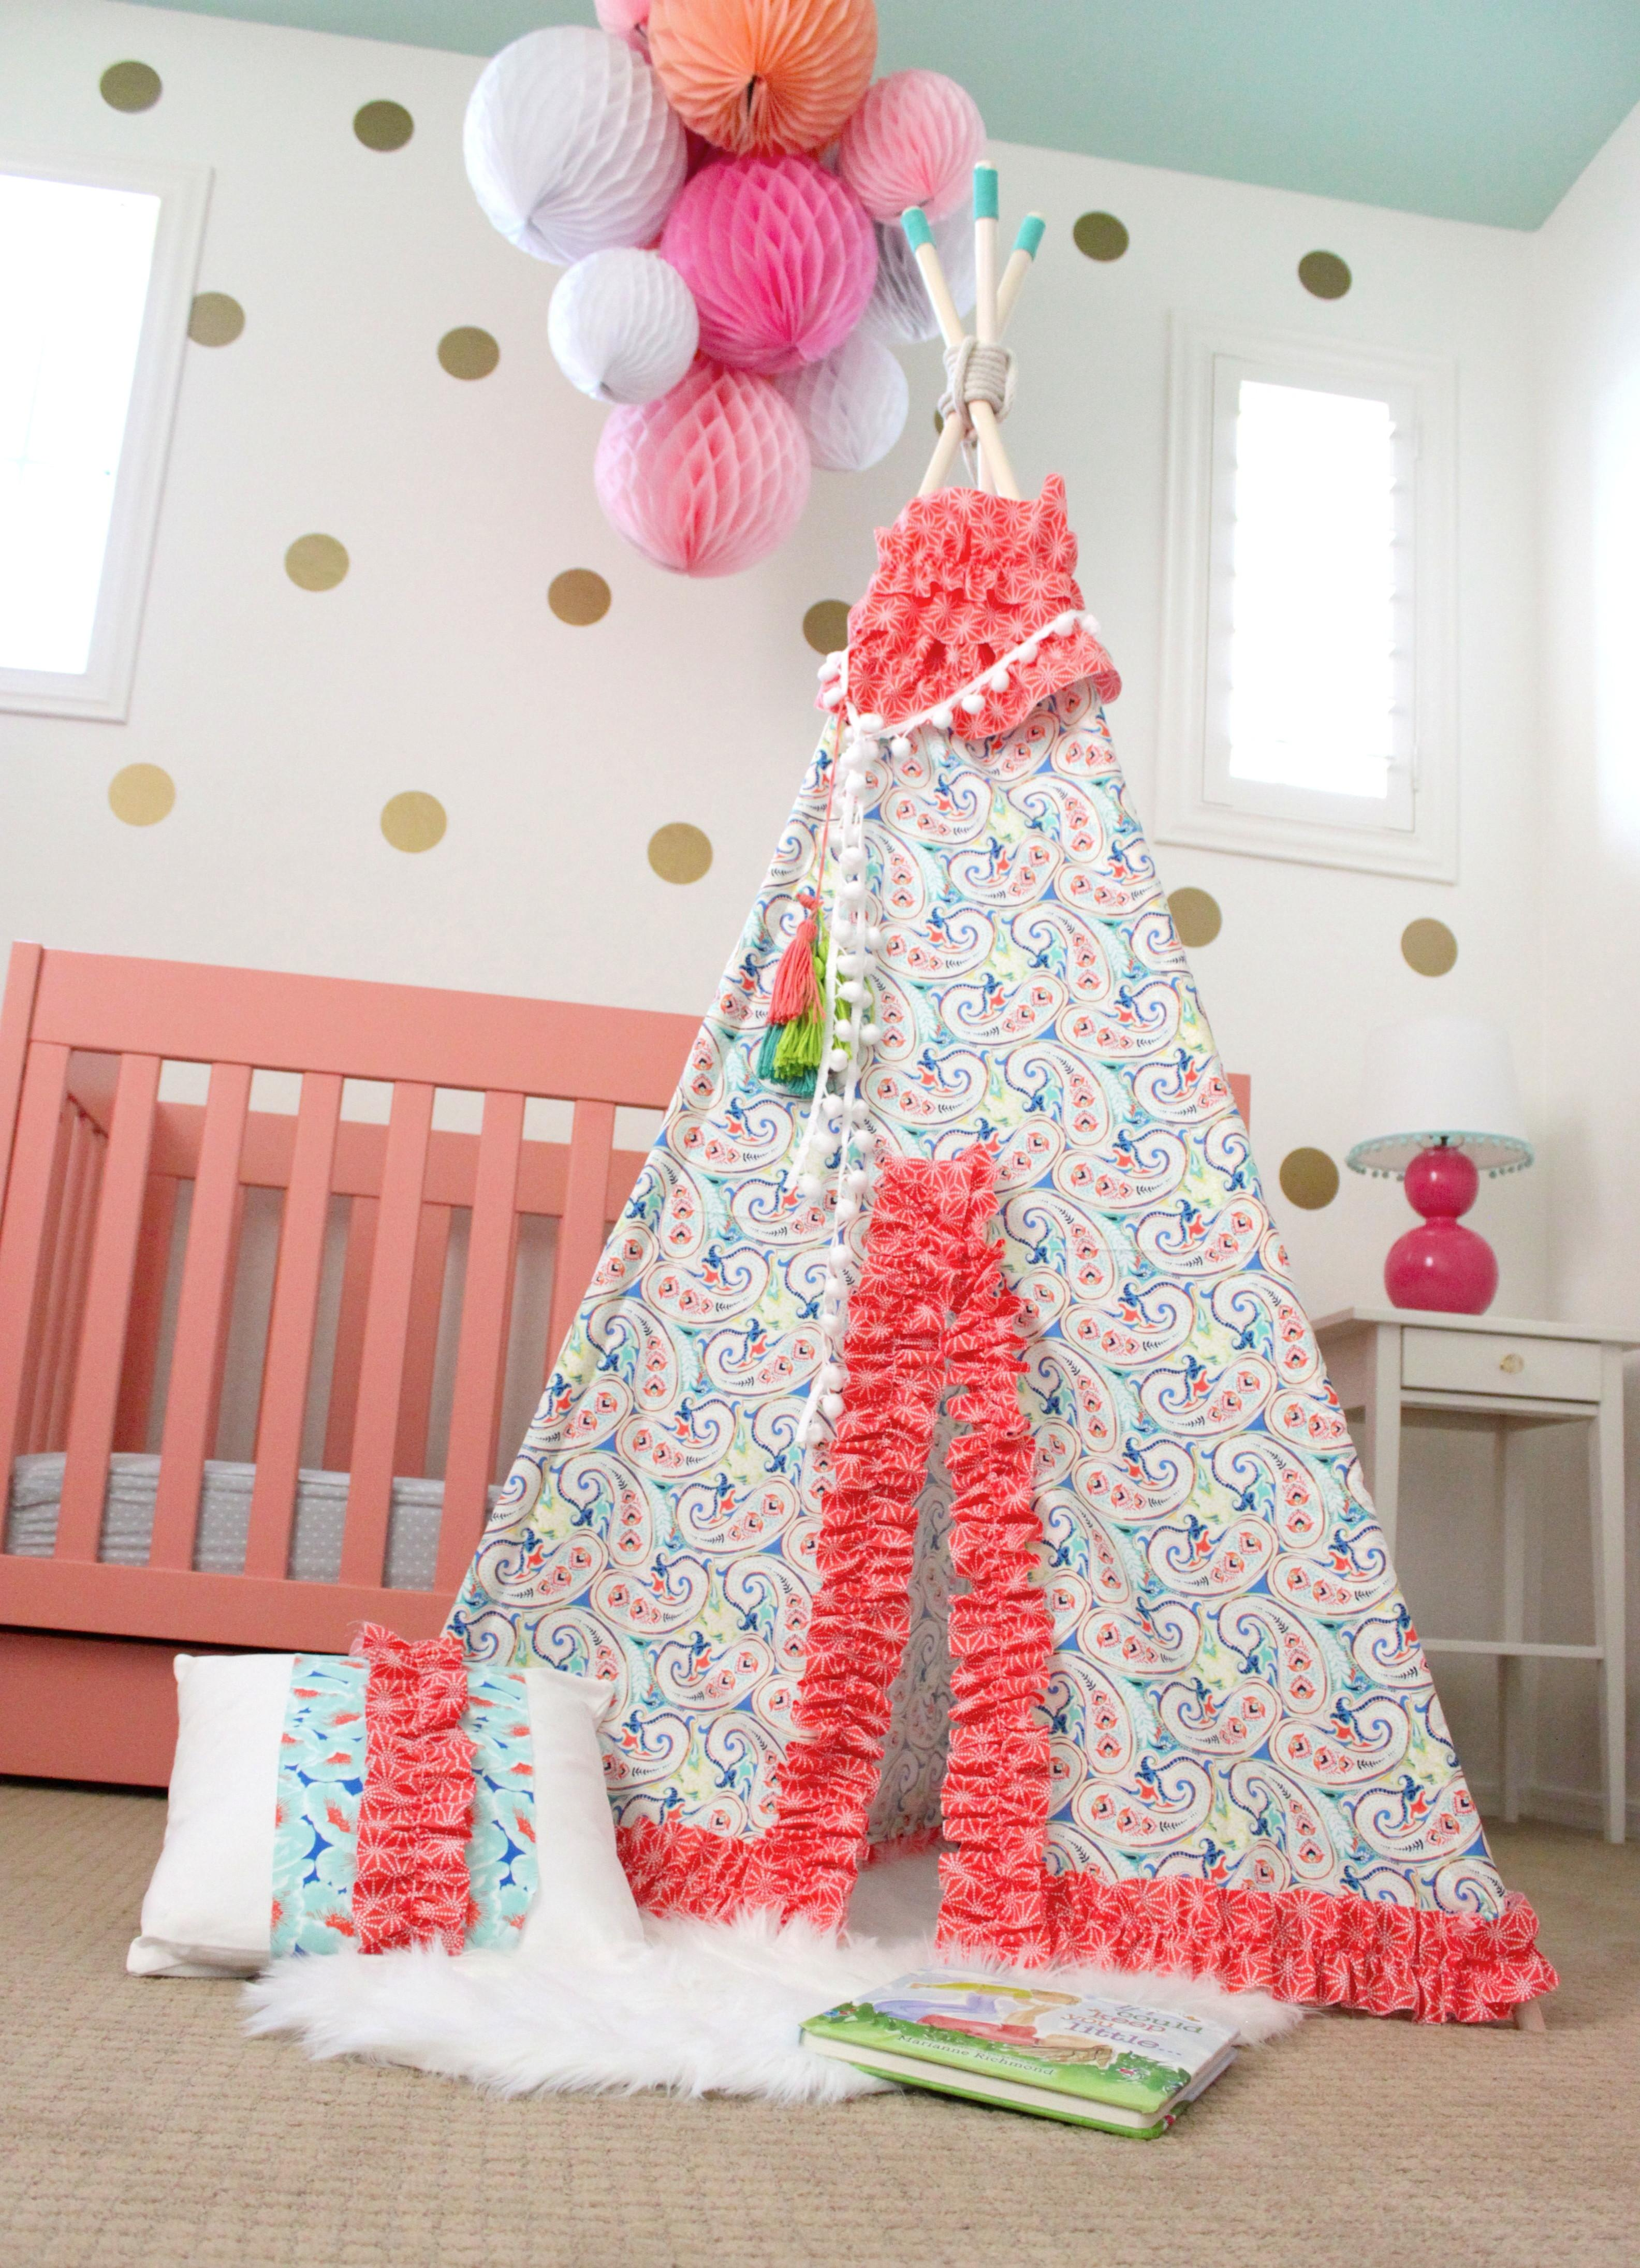 Comment Sweetest Diy Teepee Ever Seen All